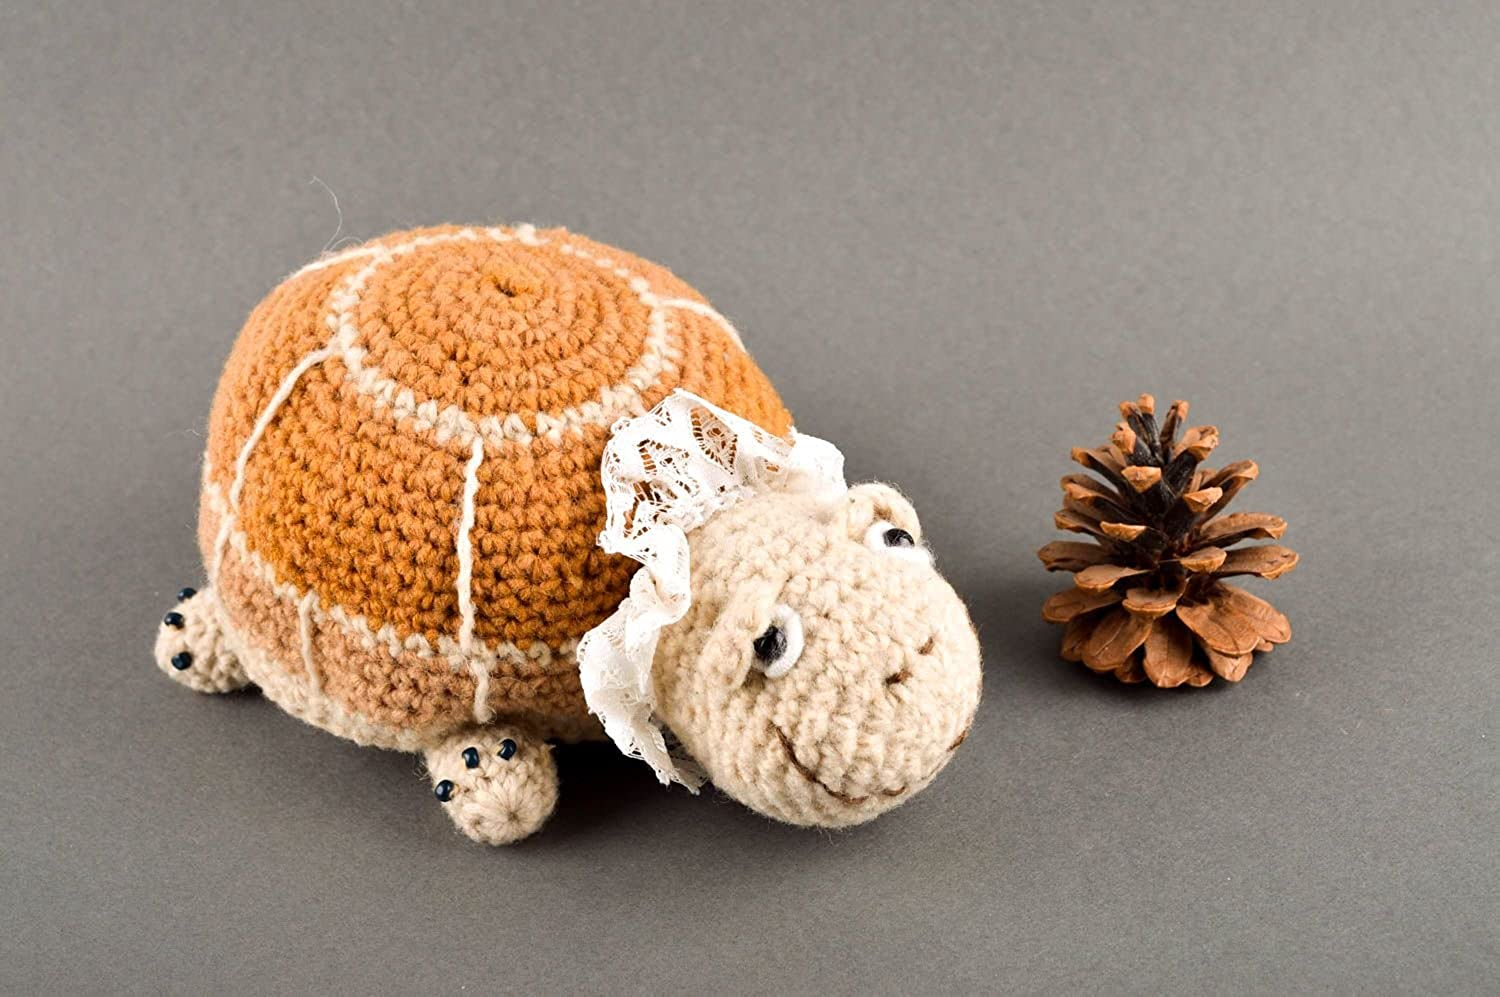 Handmade Unusual Turtle Toy Beautiful Knitted Toy Designer Textile Toy